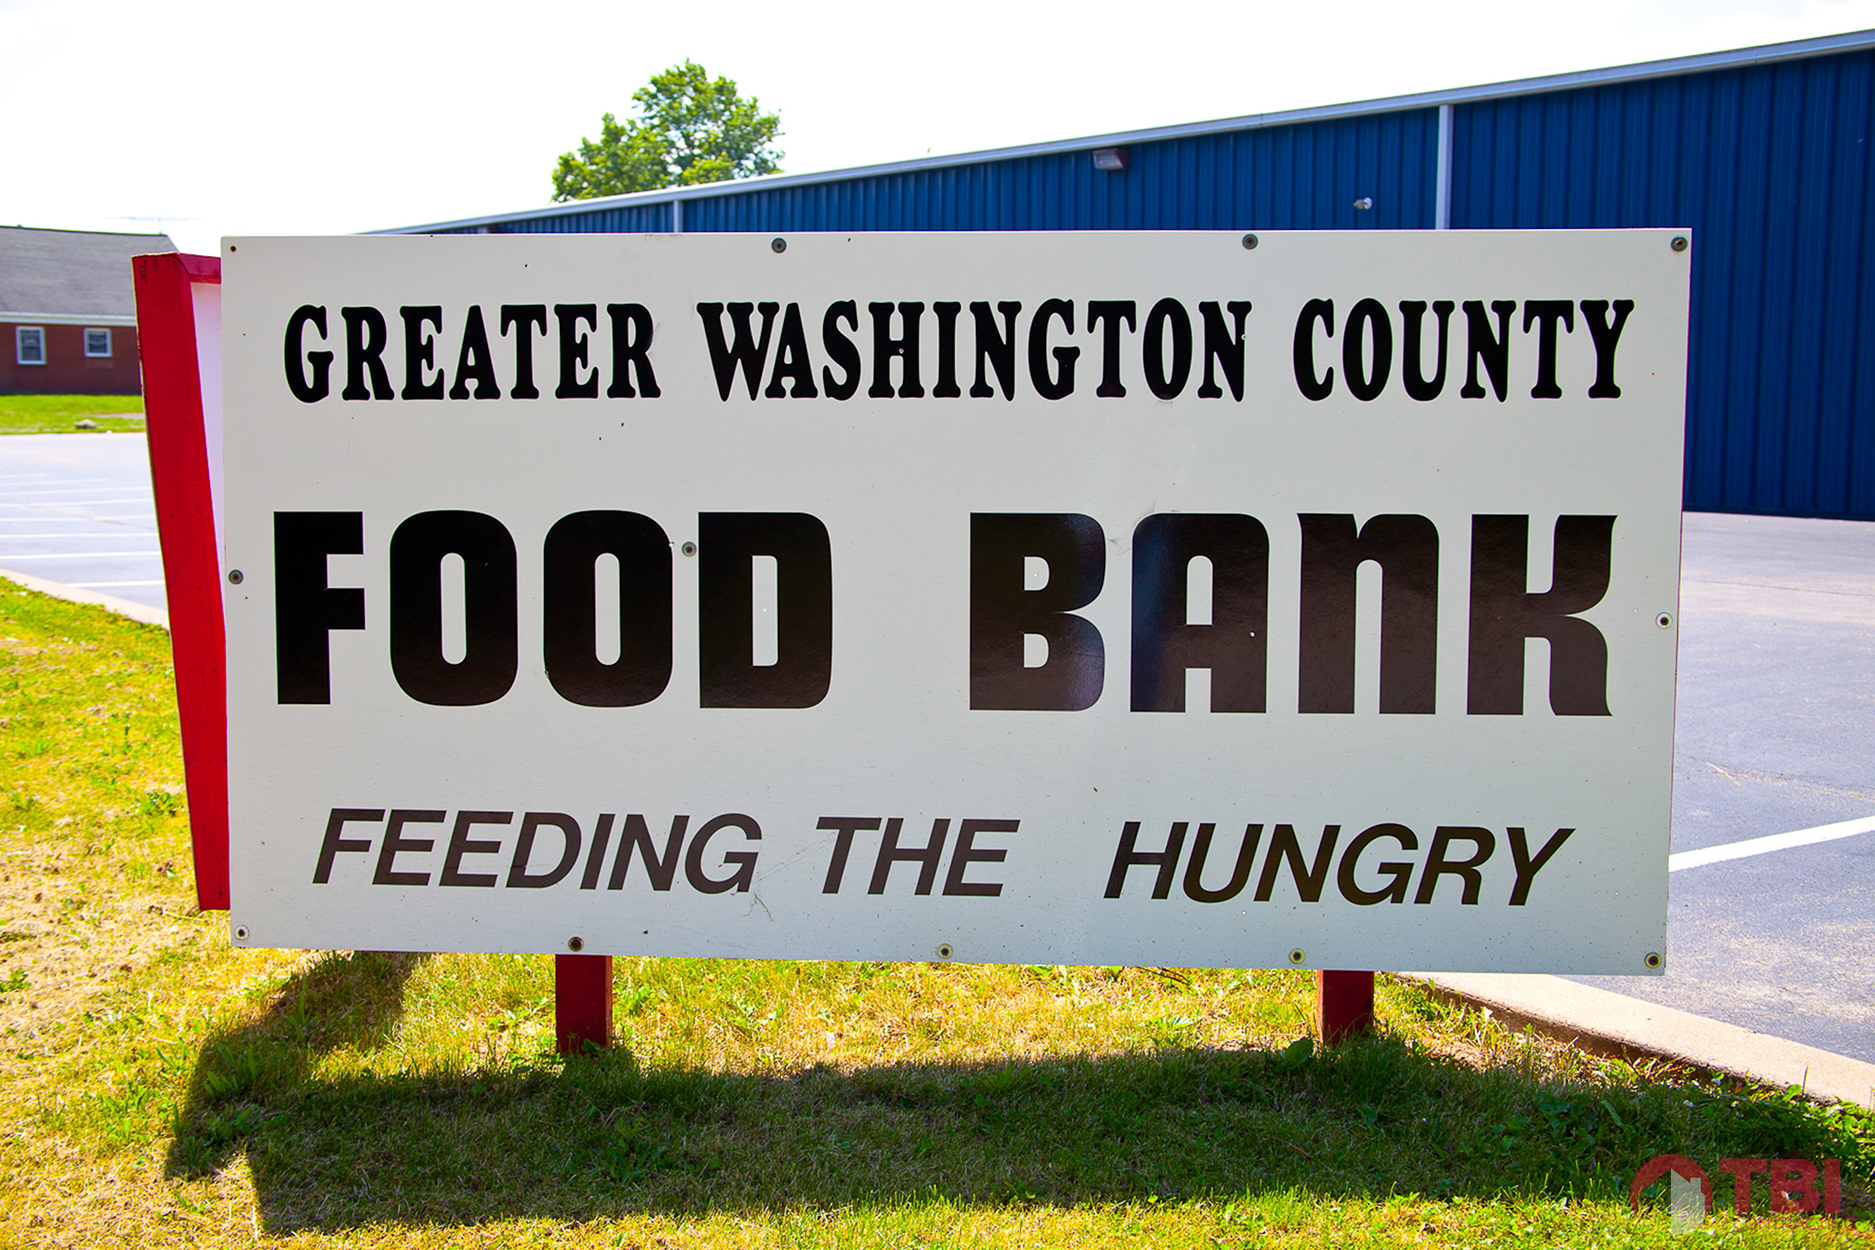 https://i0.wp.com/tbicontracting.com/wp-content/uploads/2015/04/washington-county-food-bank-building-6.jpg?fit=1875%2C1250